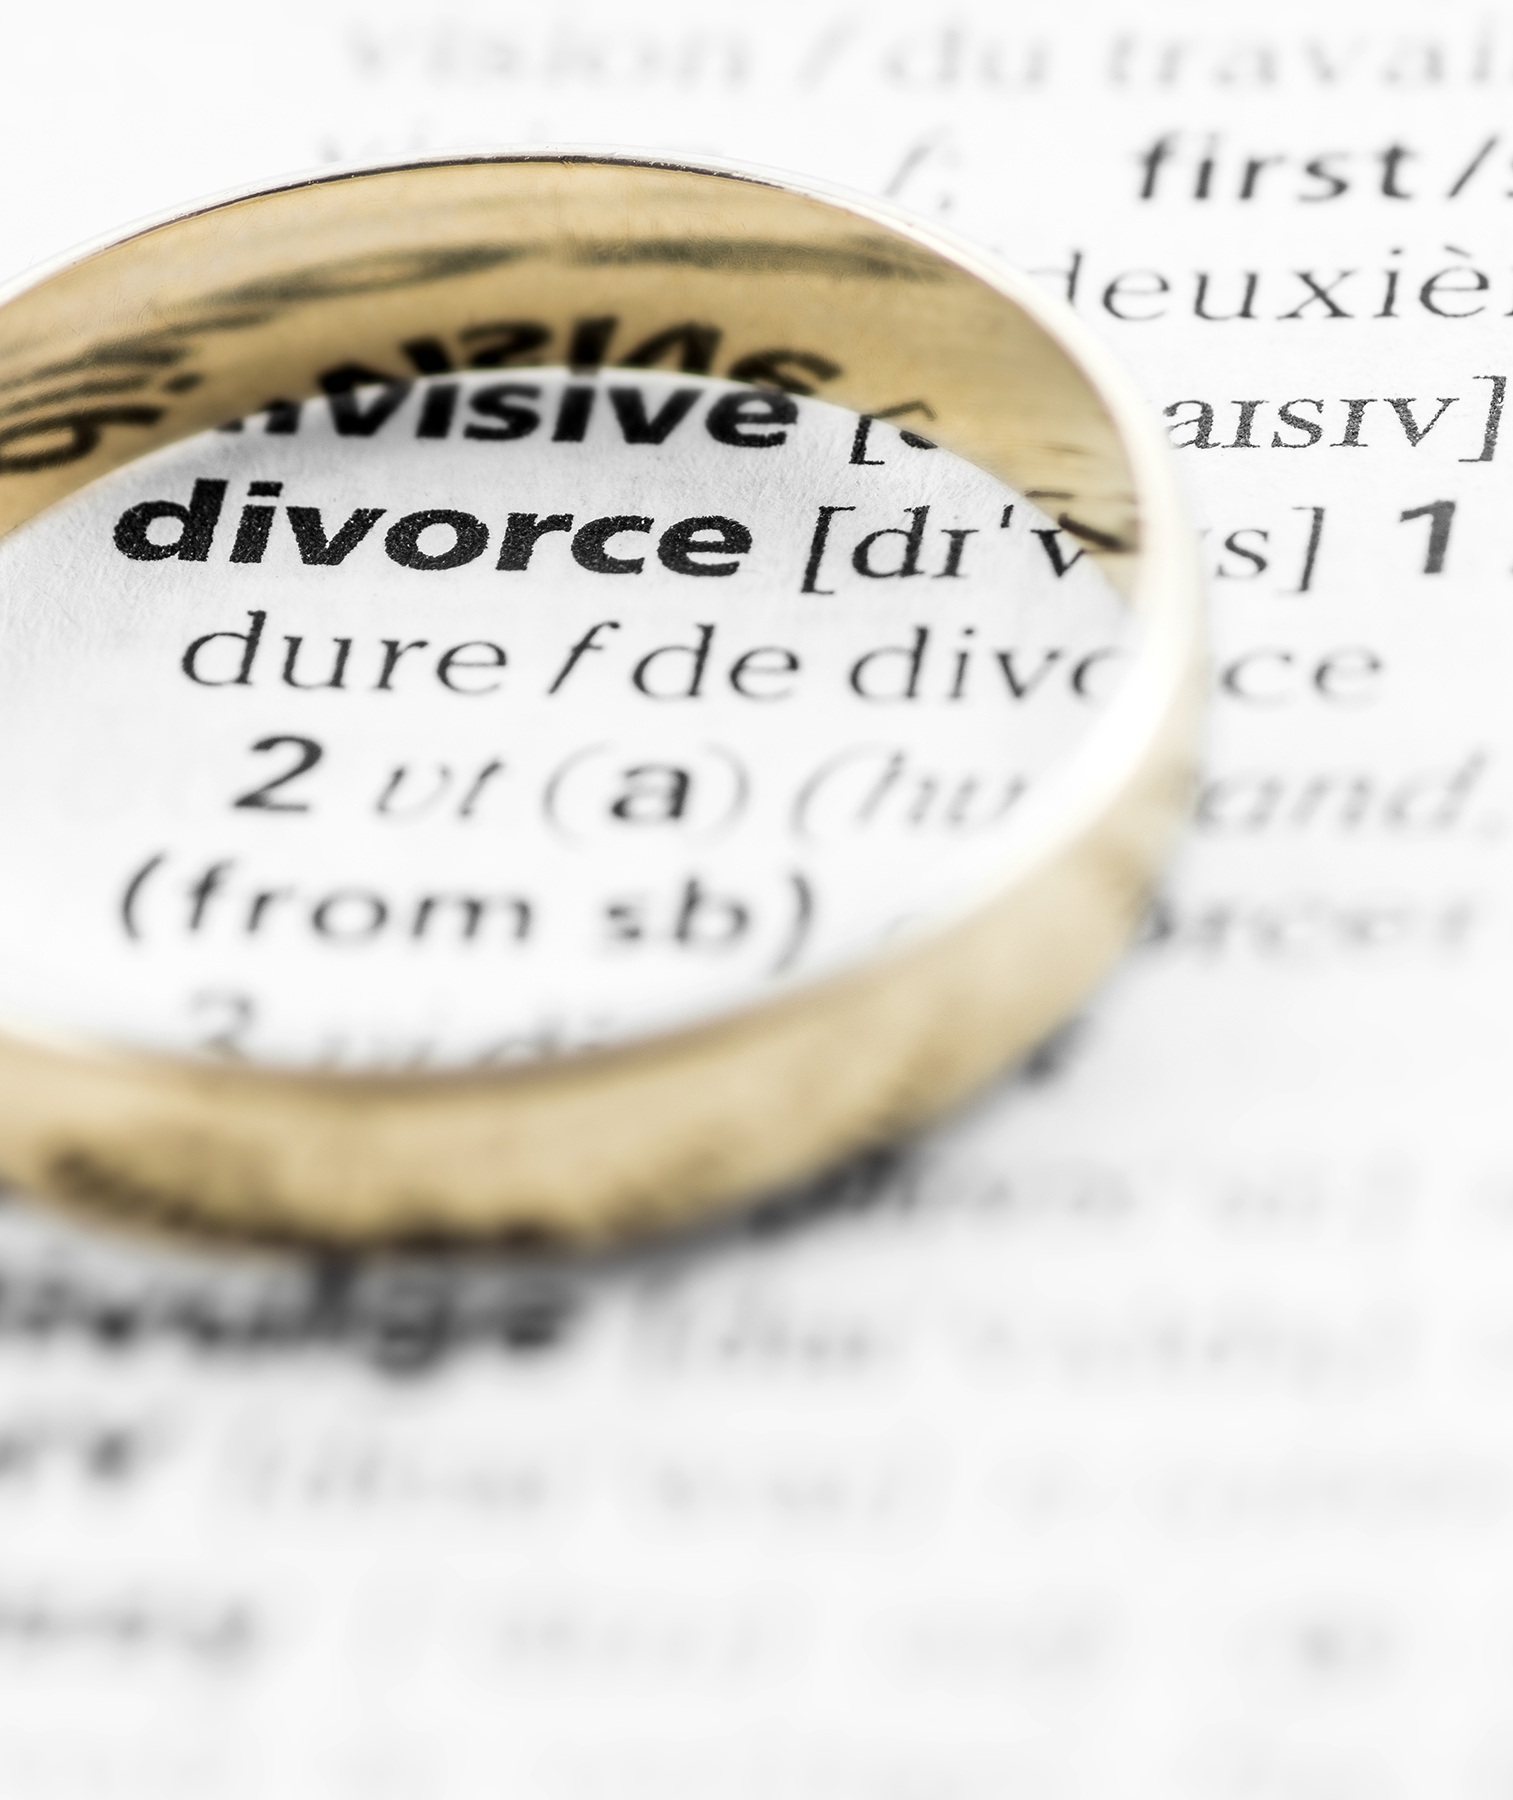 honest-divorce-advice